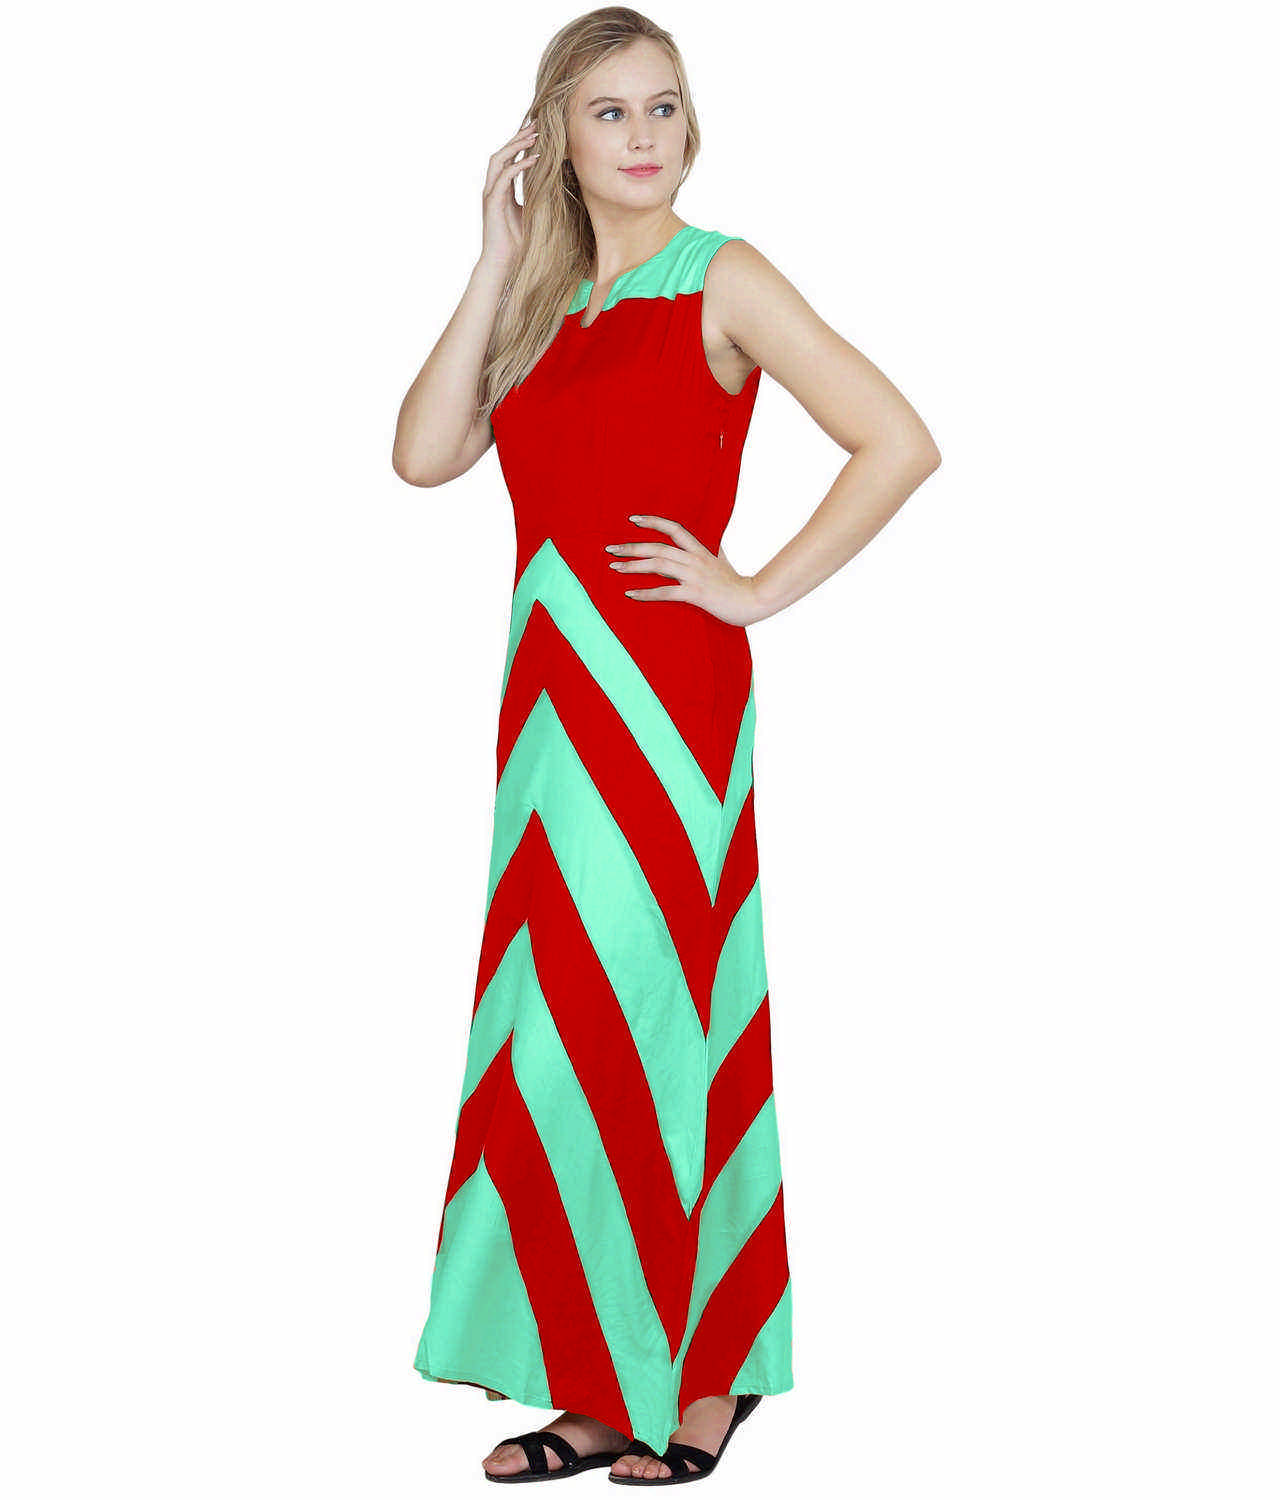 Color Block Empire Slim Fit Maxi Dress in Teal Green:Red